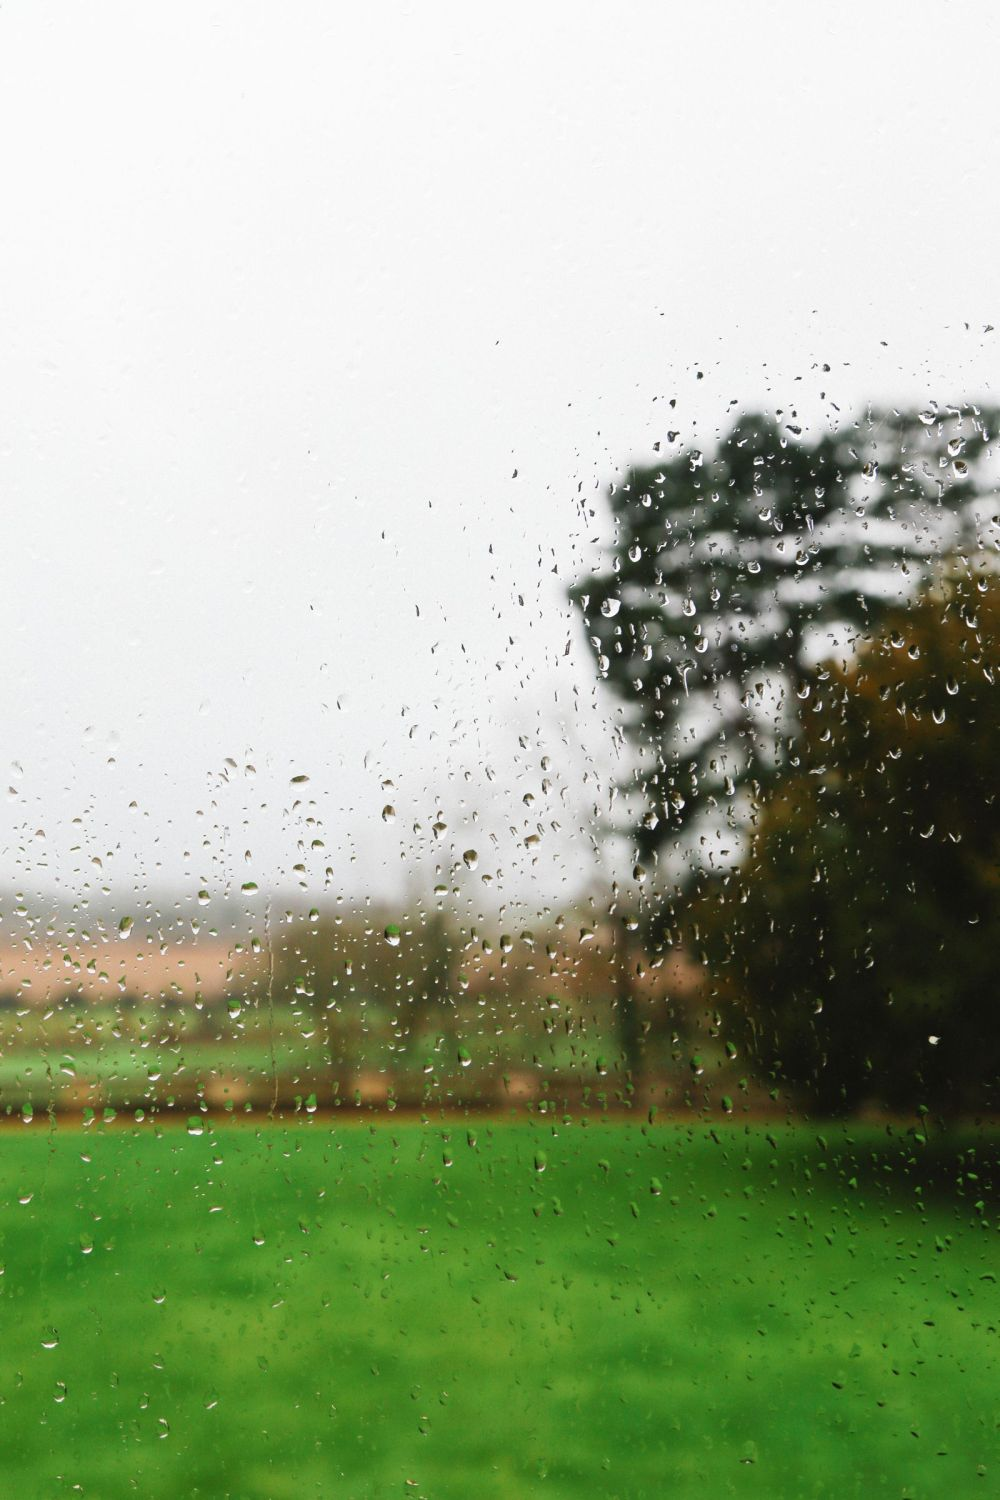 Rainy Days In The English Countryside... The Wood Norton, Bourton-On-The-Water, Broadway, Cotswolds, Stow-on-the-wold (1)